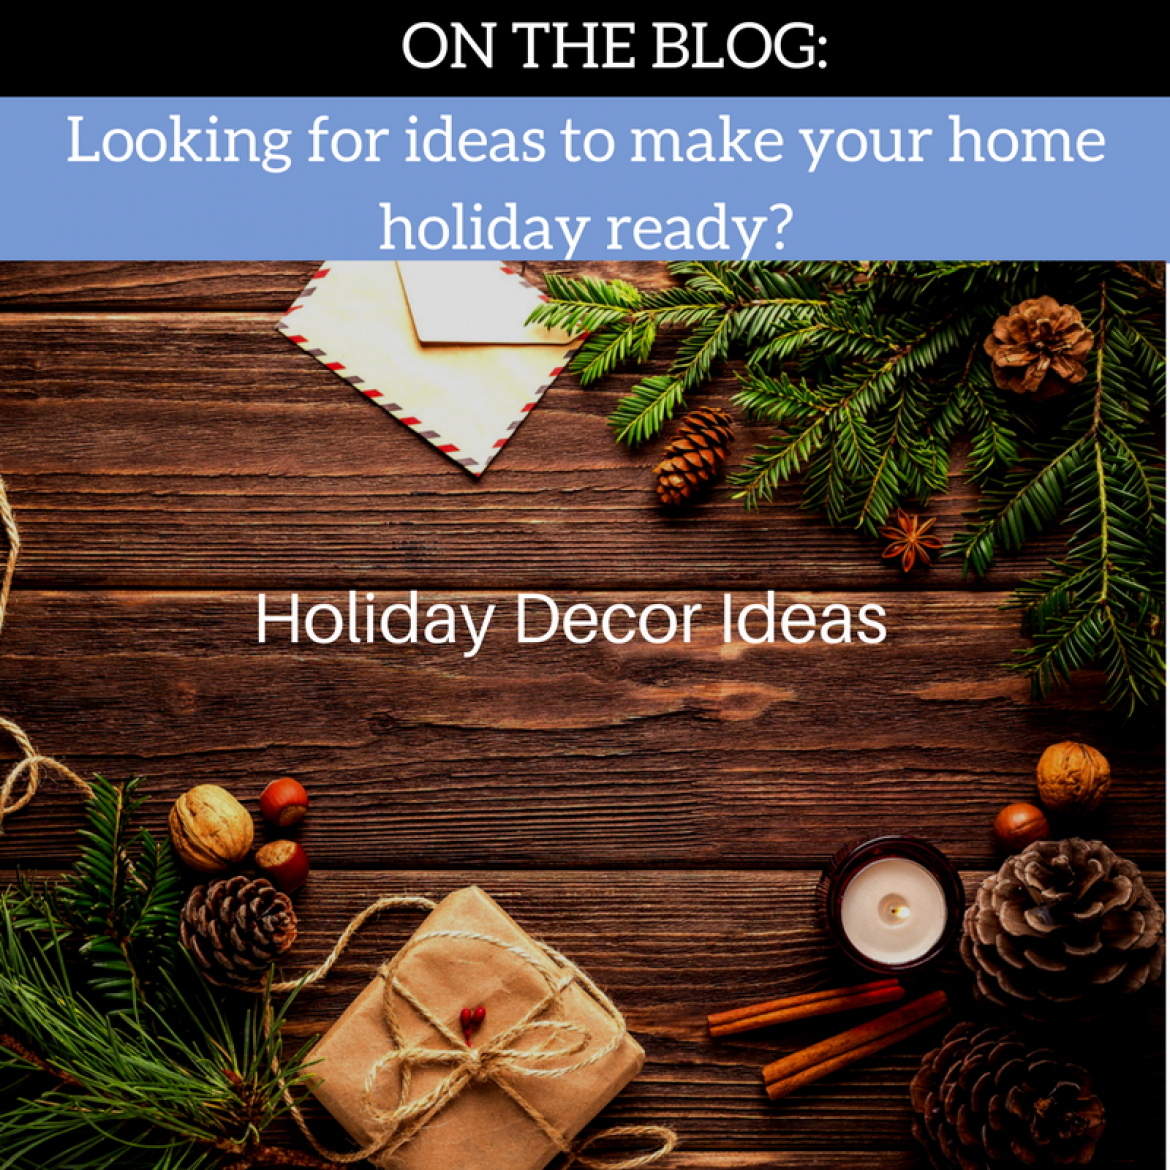 Holiday decor ideas team burca real estate holiday cheer baked goodies and several gatherings one of the things that signify the holiday season is the decor used to symbolize this time of year biocorpaavc Images